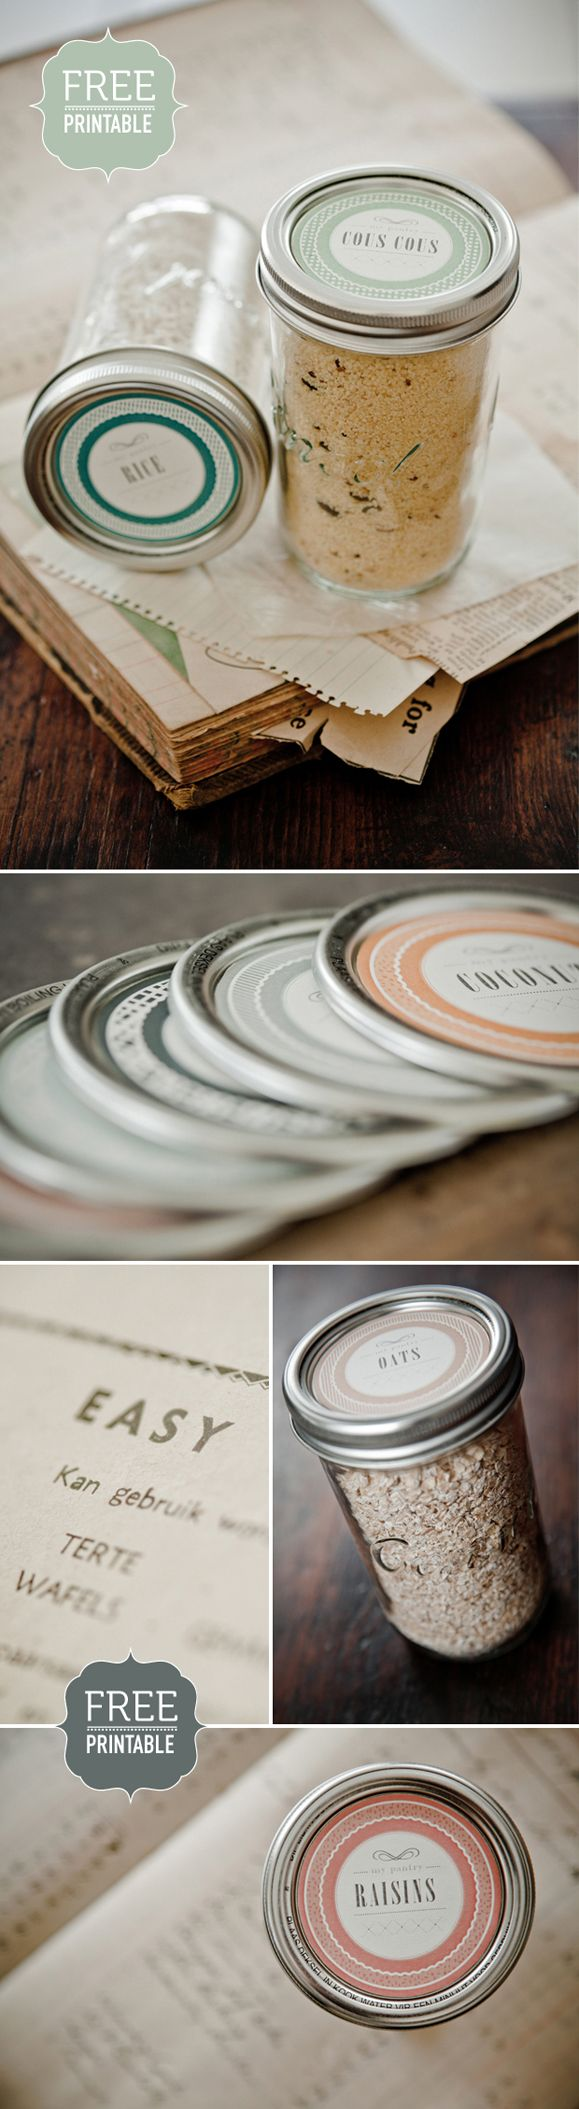 Best 25 free printable labels ideas on pinterest for Kitchen jar ideas